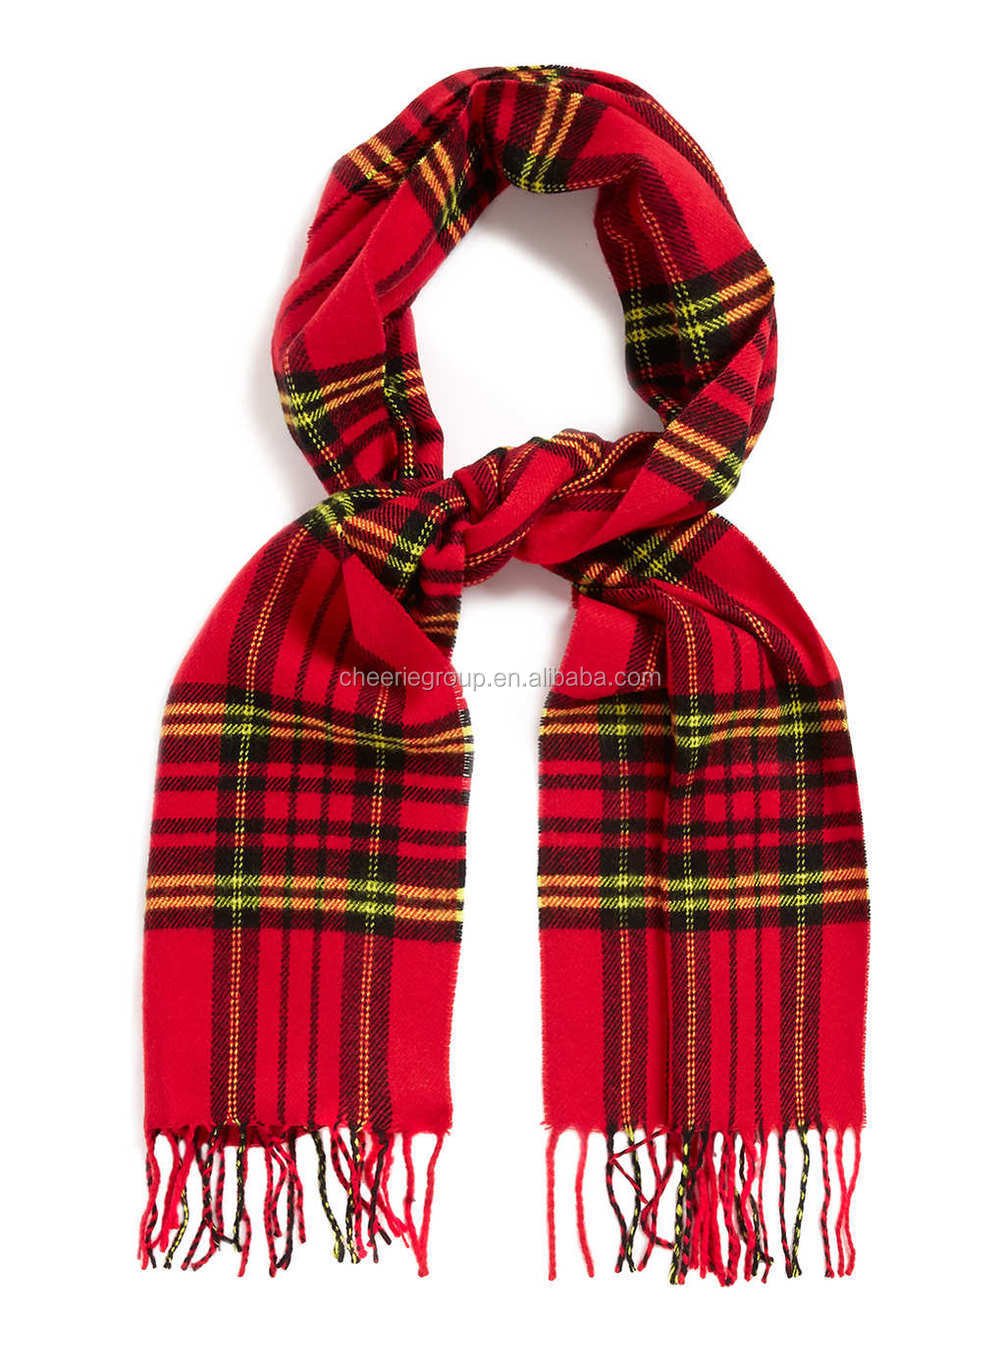 hotselling neckerchief red check woven scarf